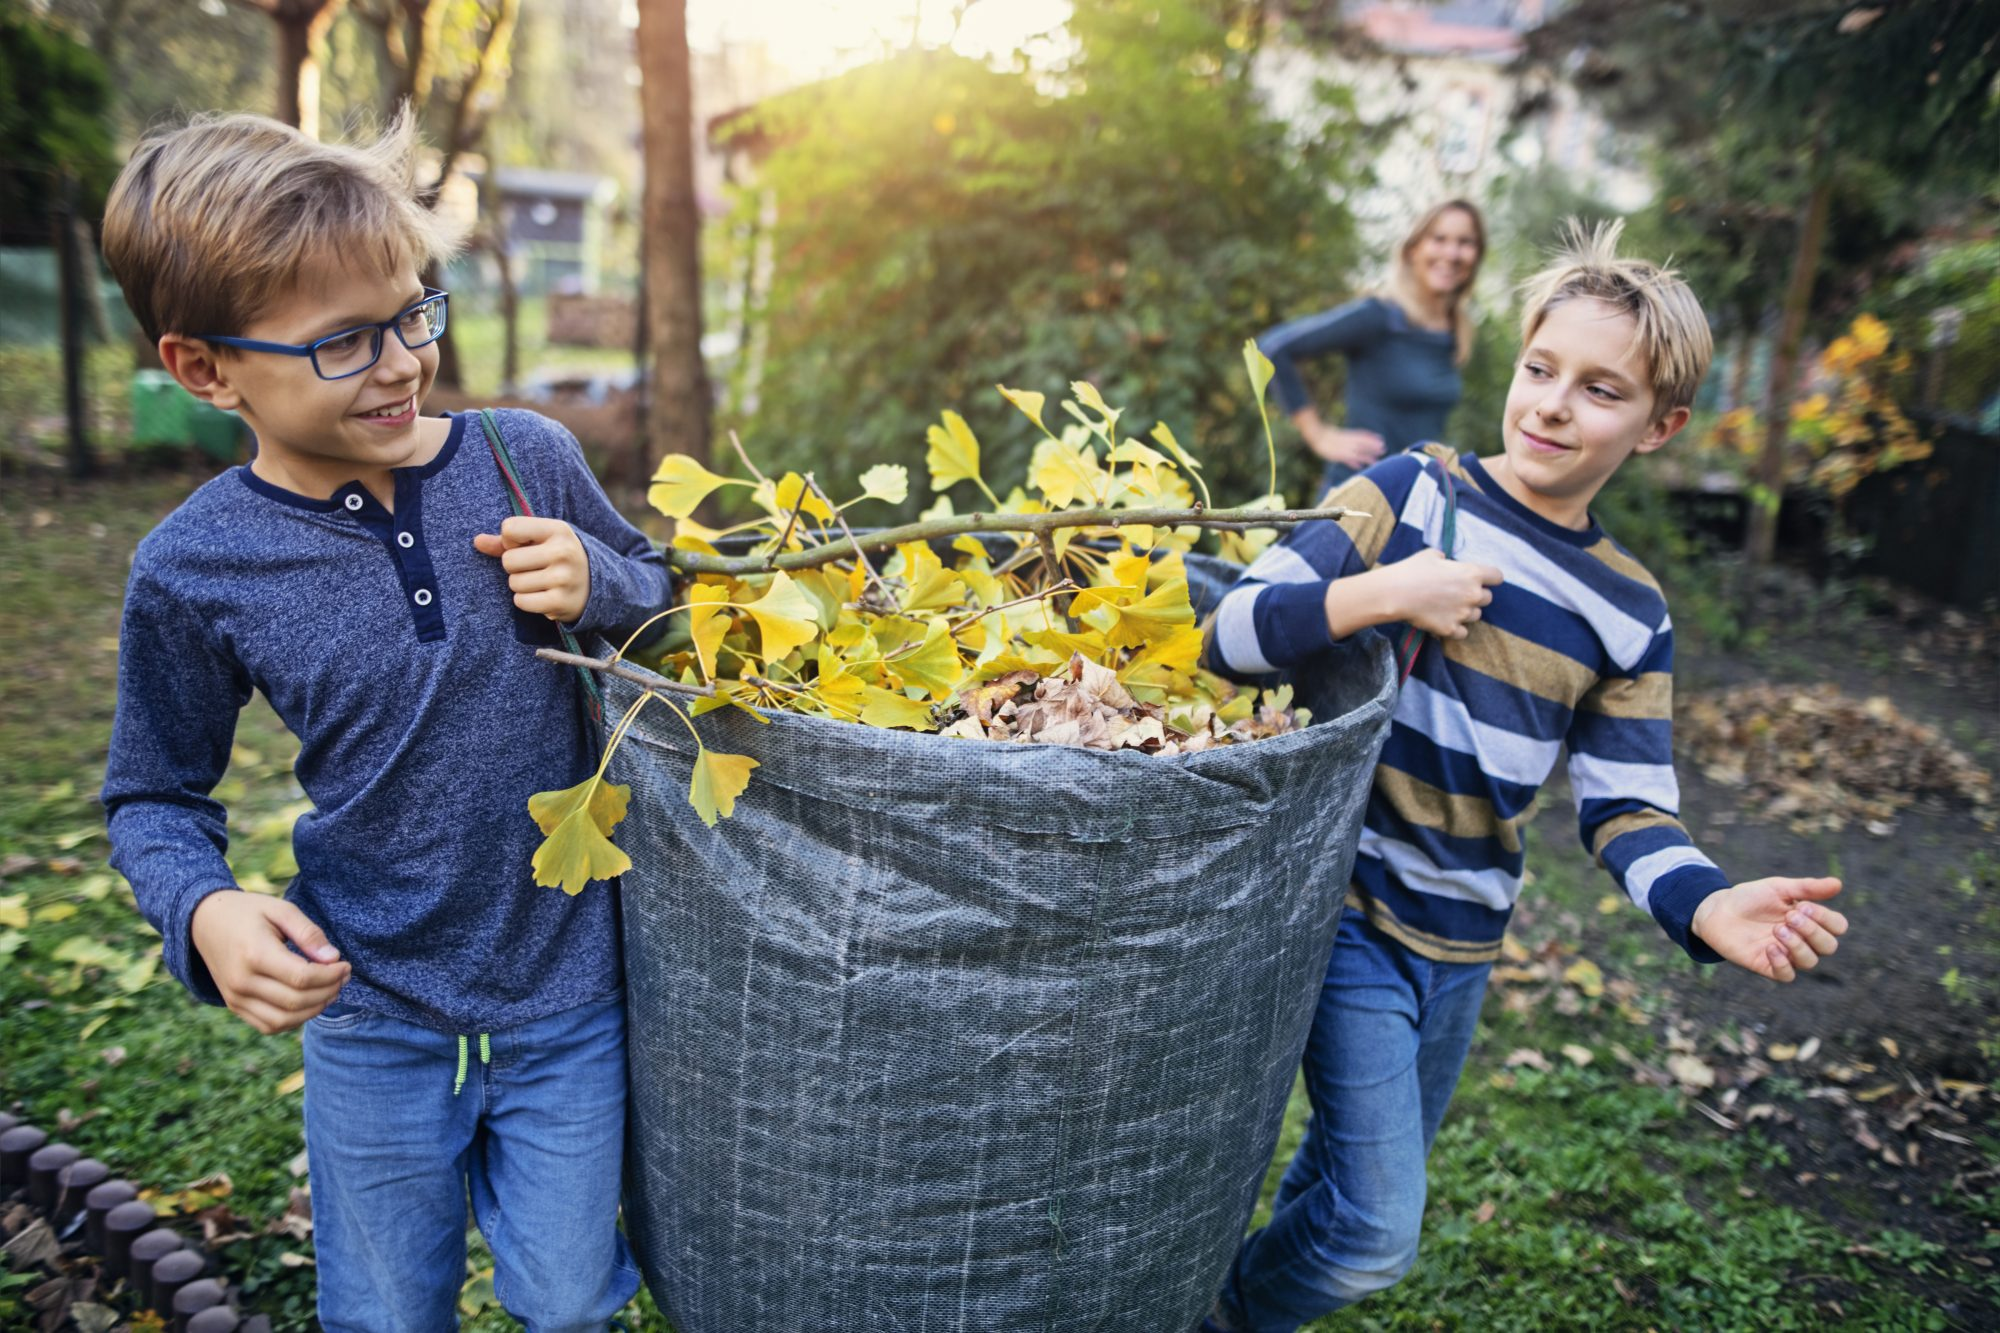 two boys carrying reusable bag full of leaves